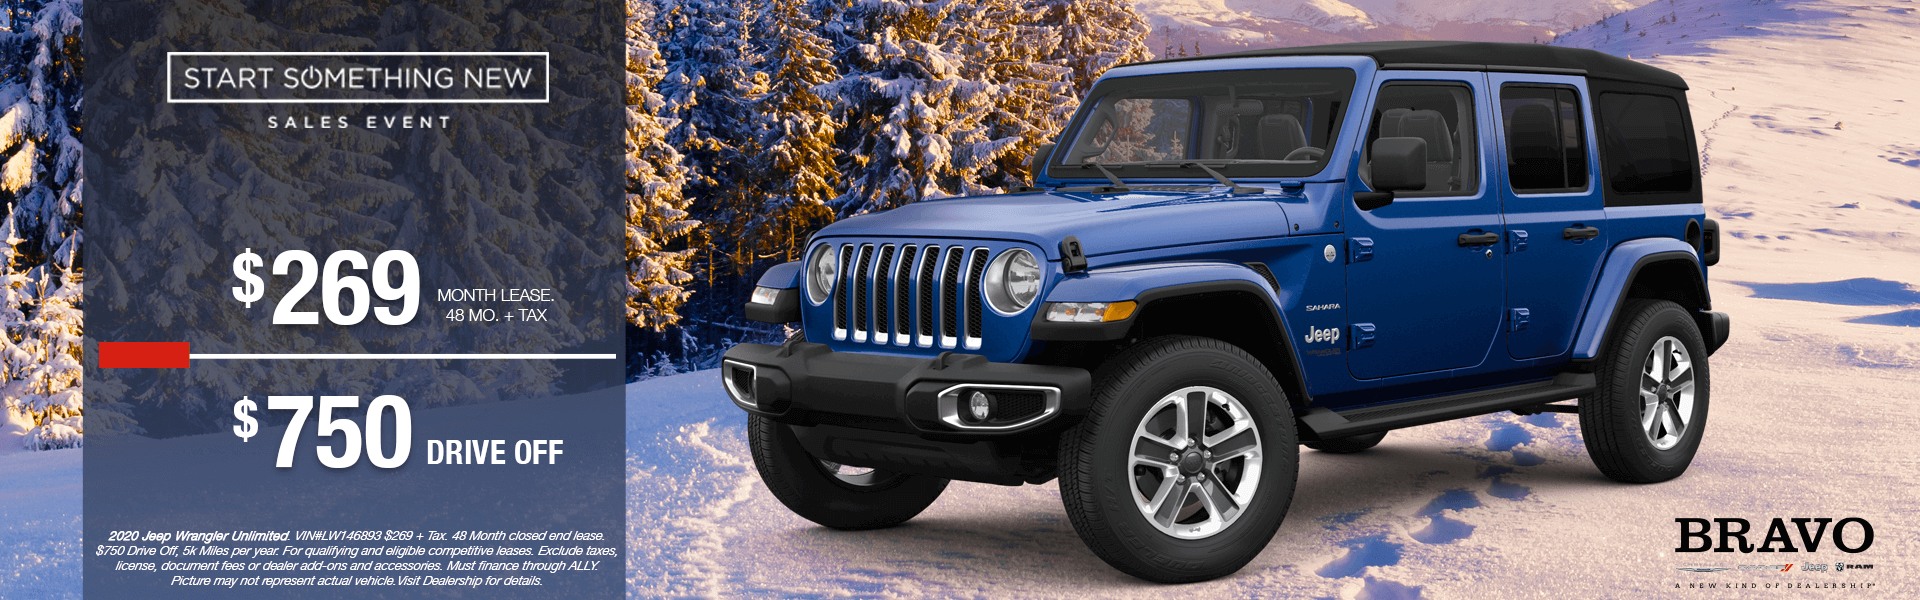 Jeep Wrangler Unlimited- Lease